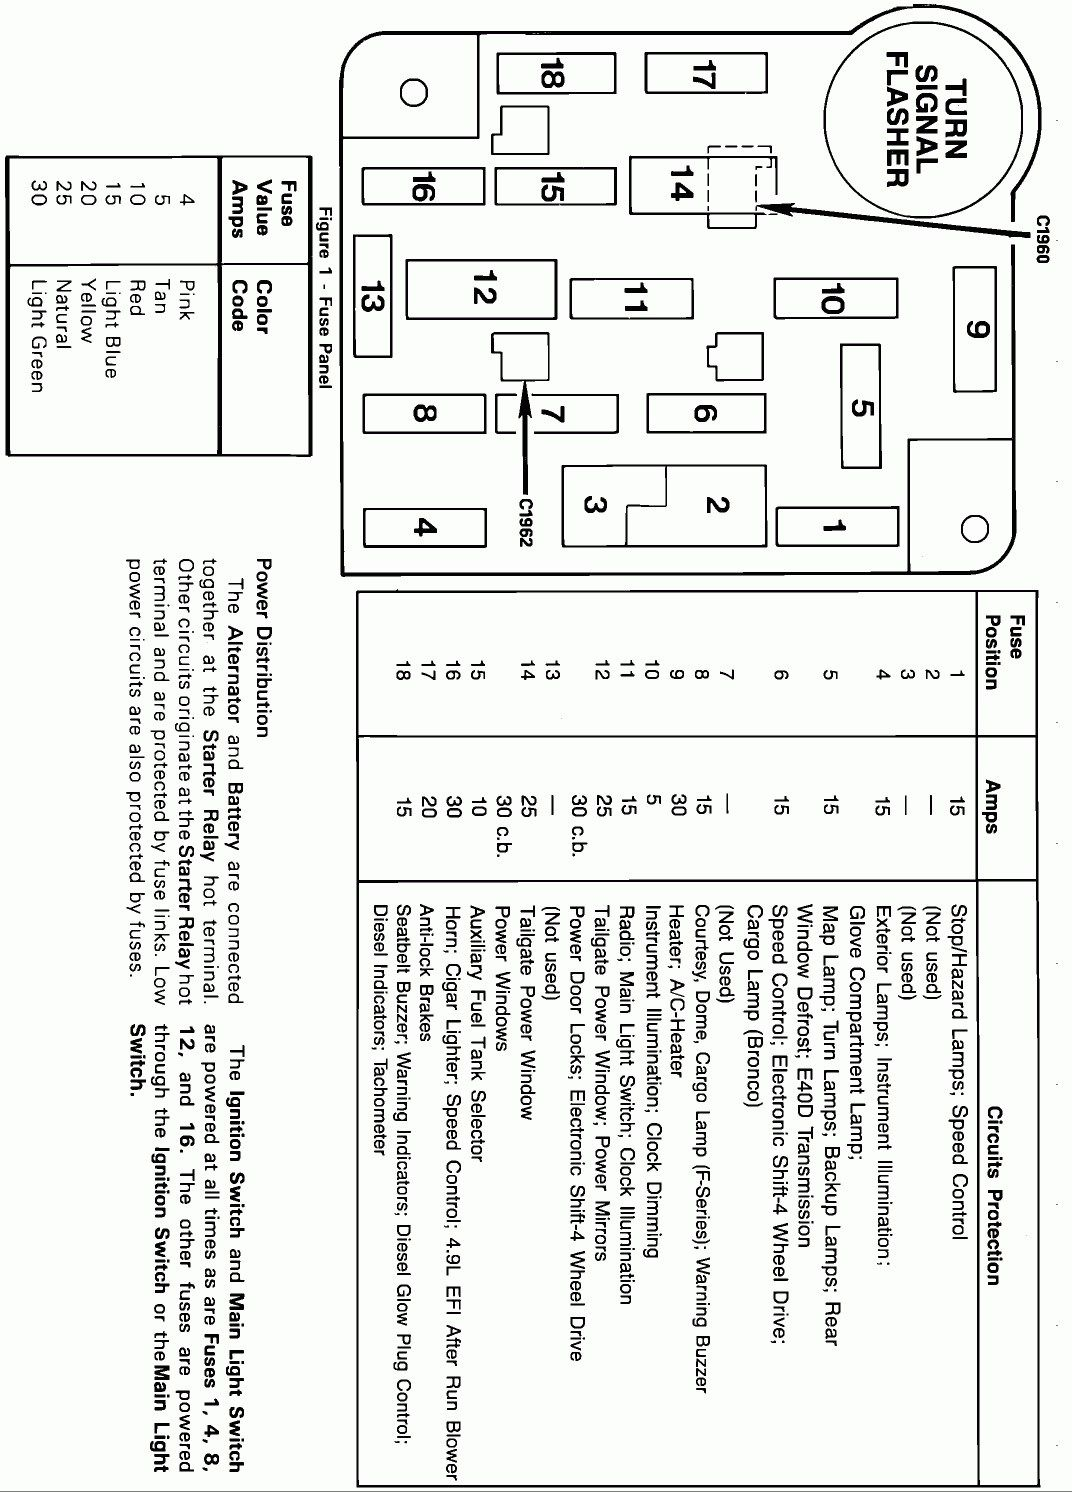 1989 ford fuse box wiring diagram mega 1989 ford e150 fuse box diagram 1989 ford fuse box [ 1072 x 1492 Pixel ]